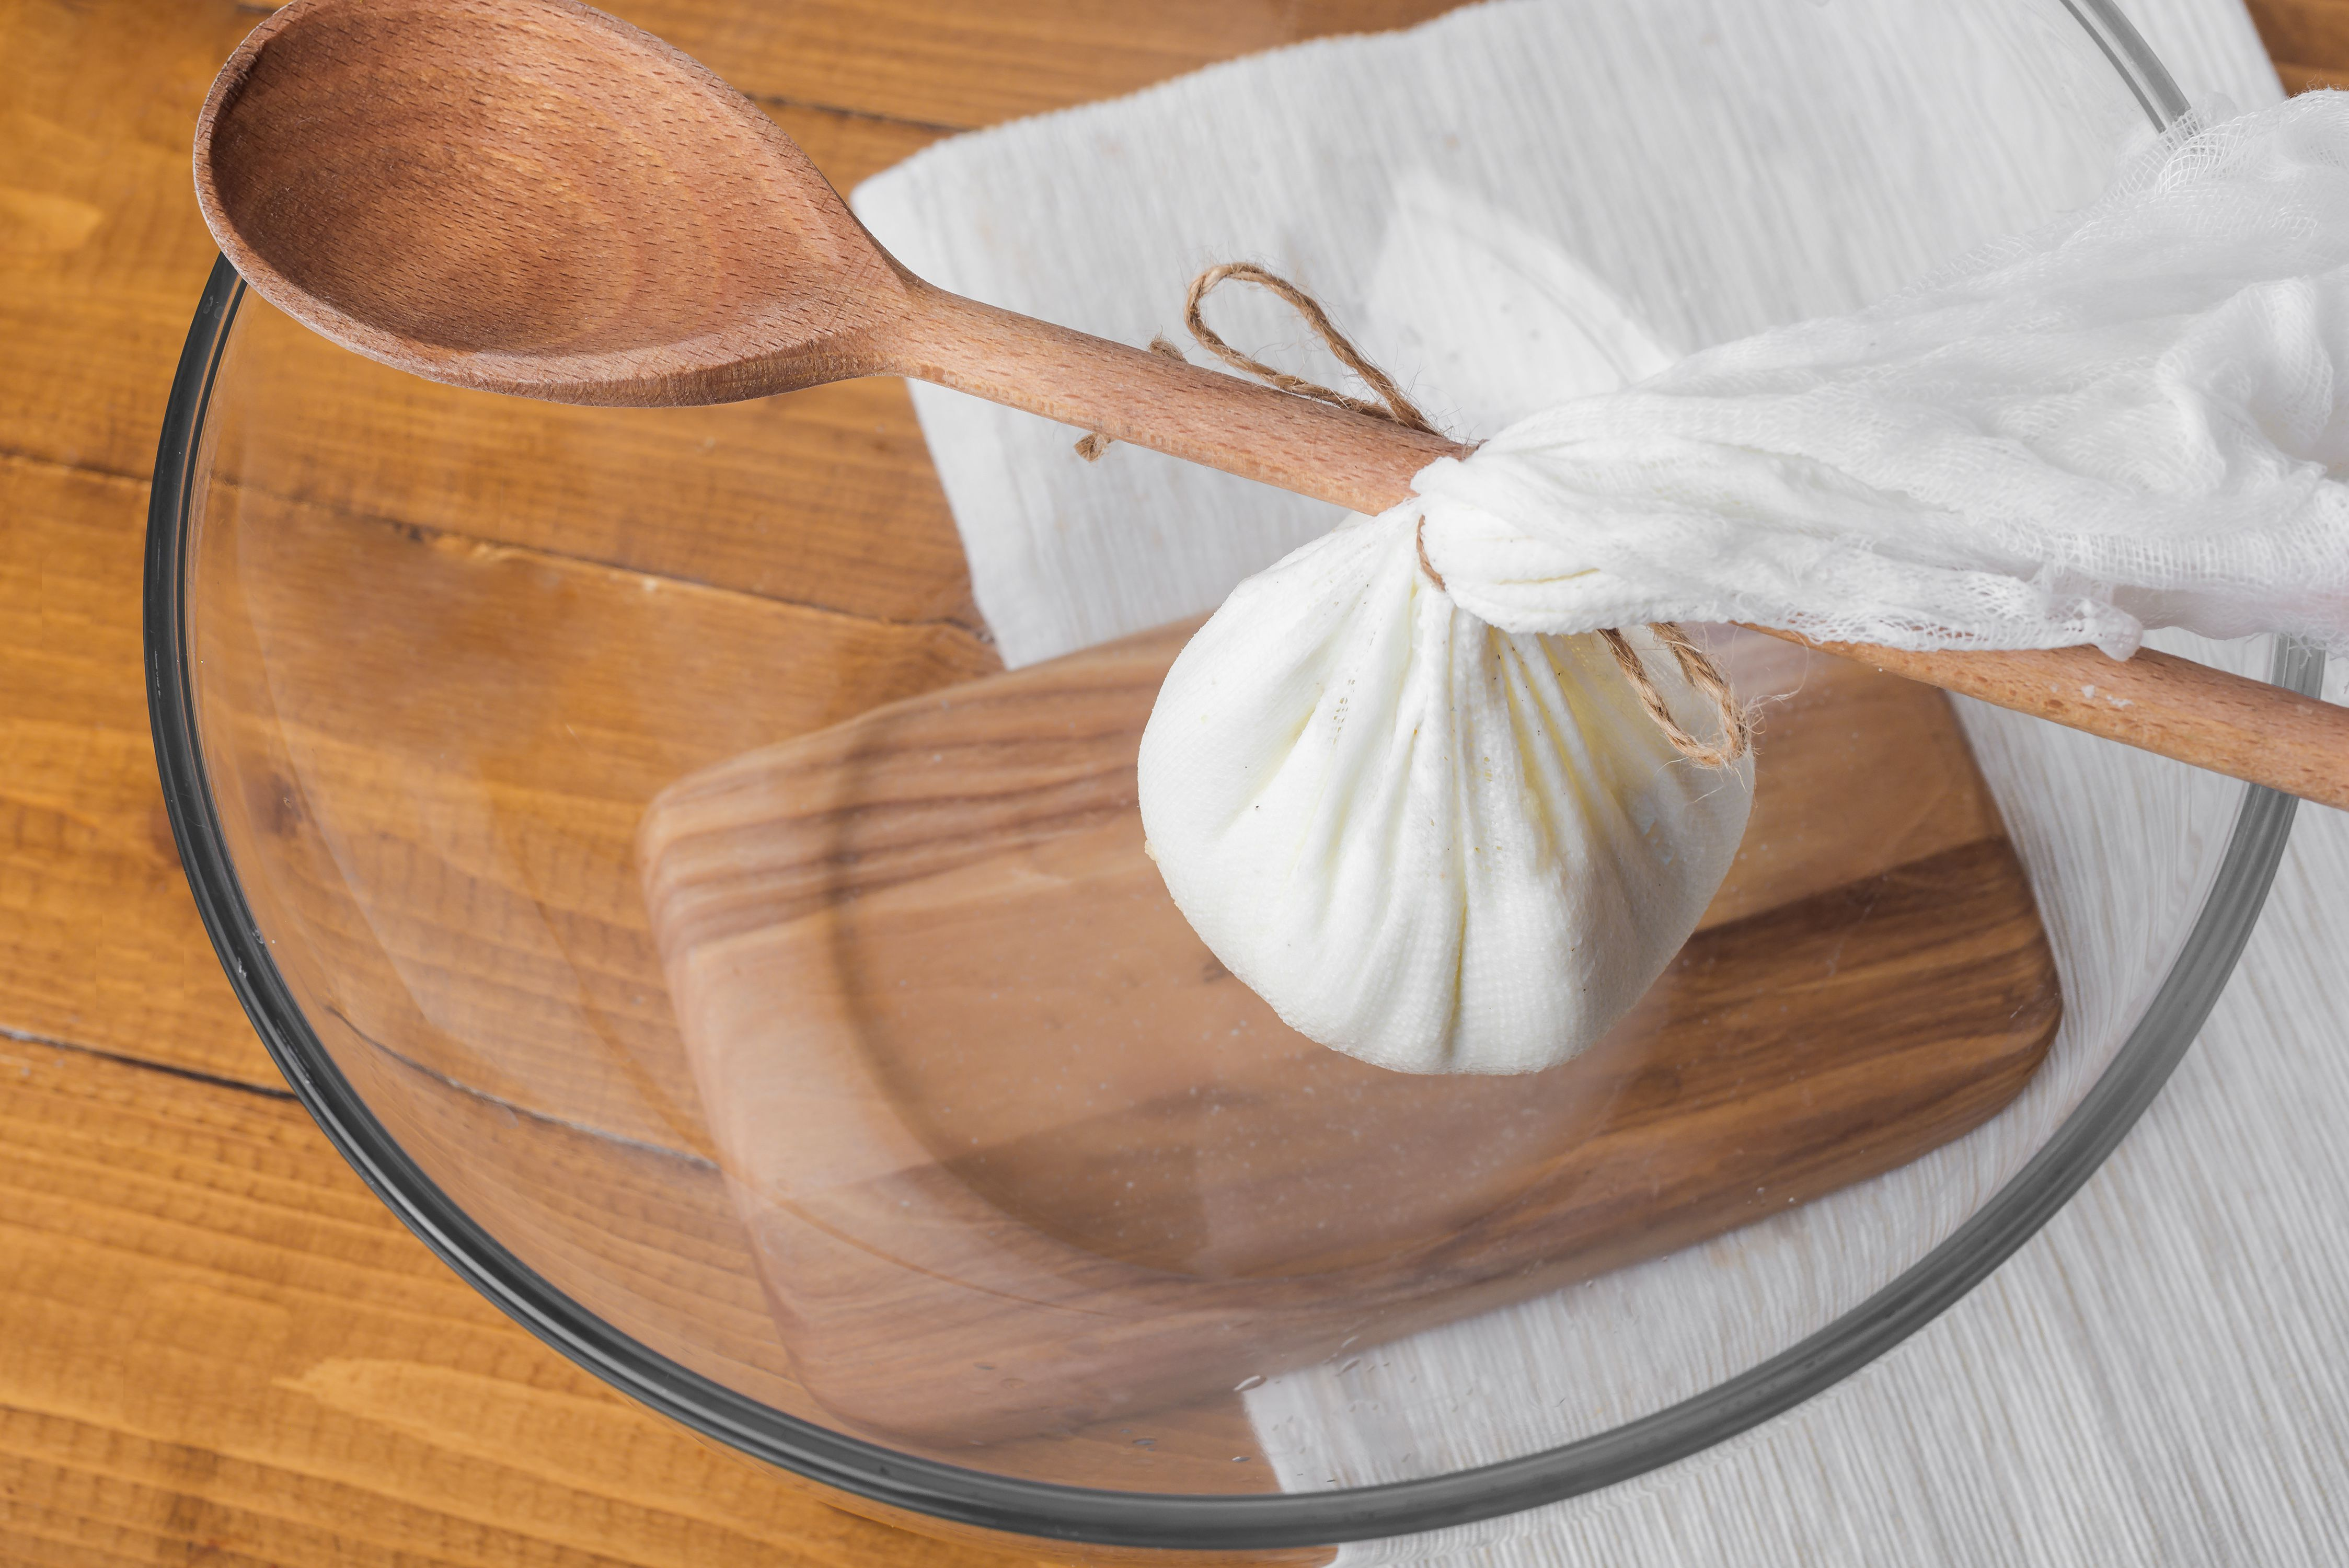 Hang the cheesecloth bundle over bowl